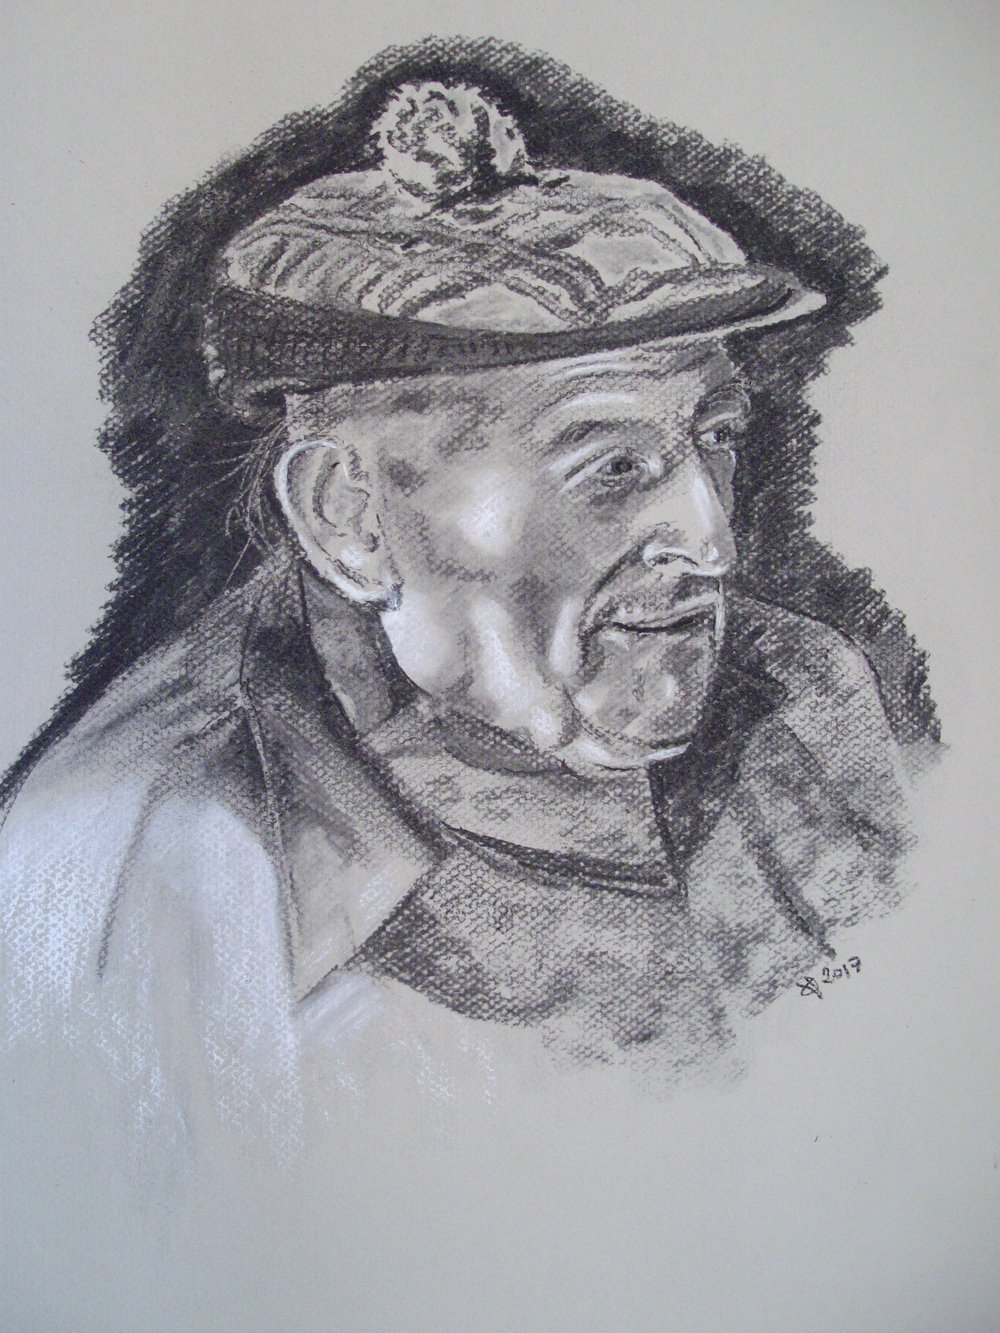 Image of Art Davies drawn by Quentin Verhaegen